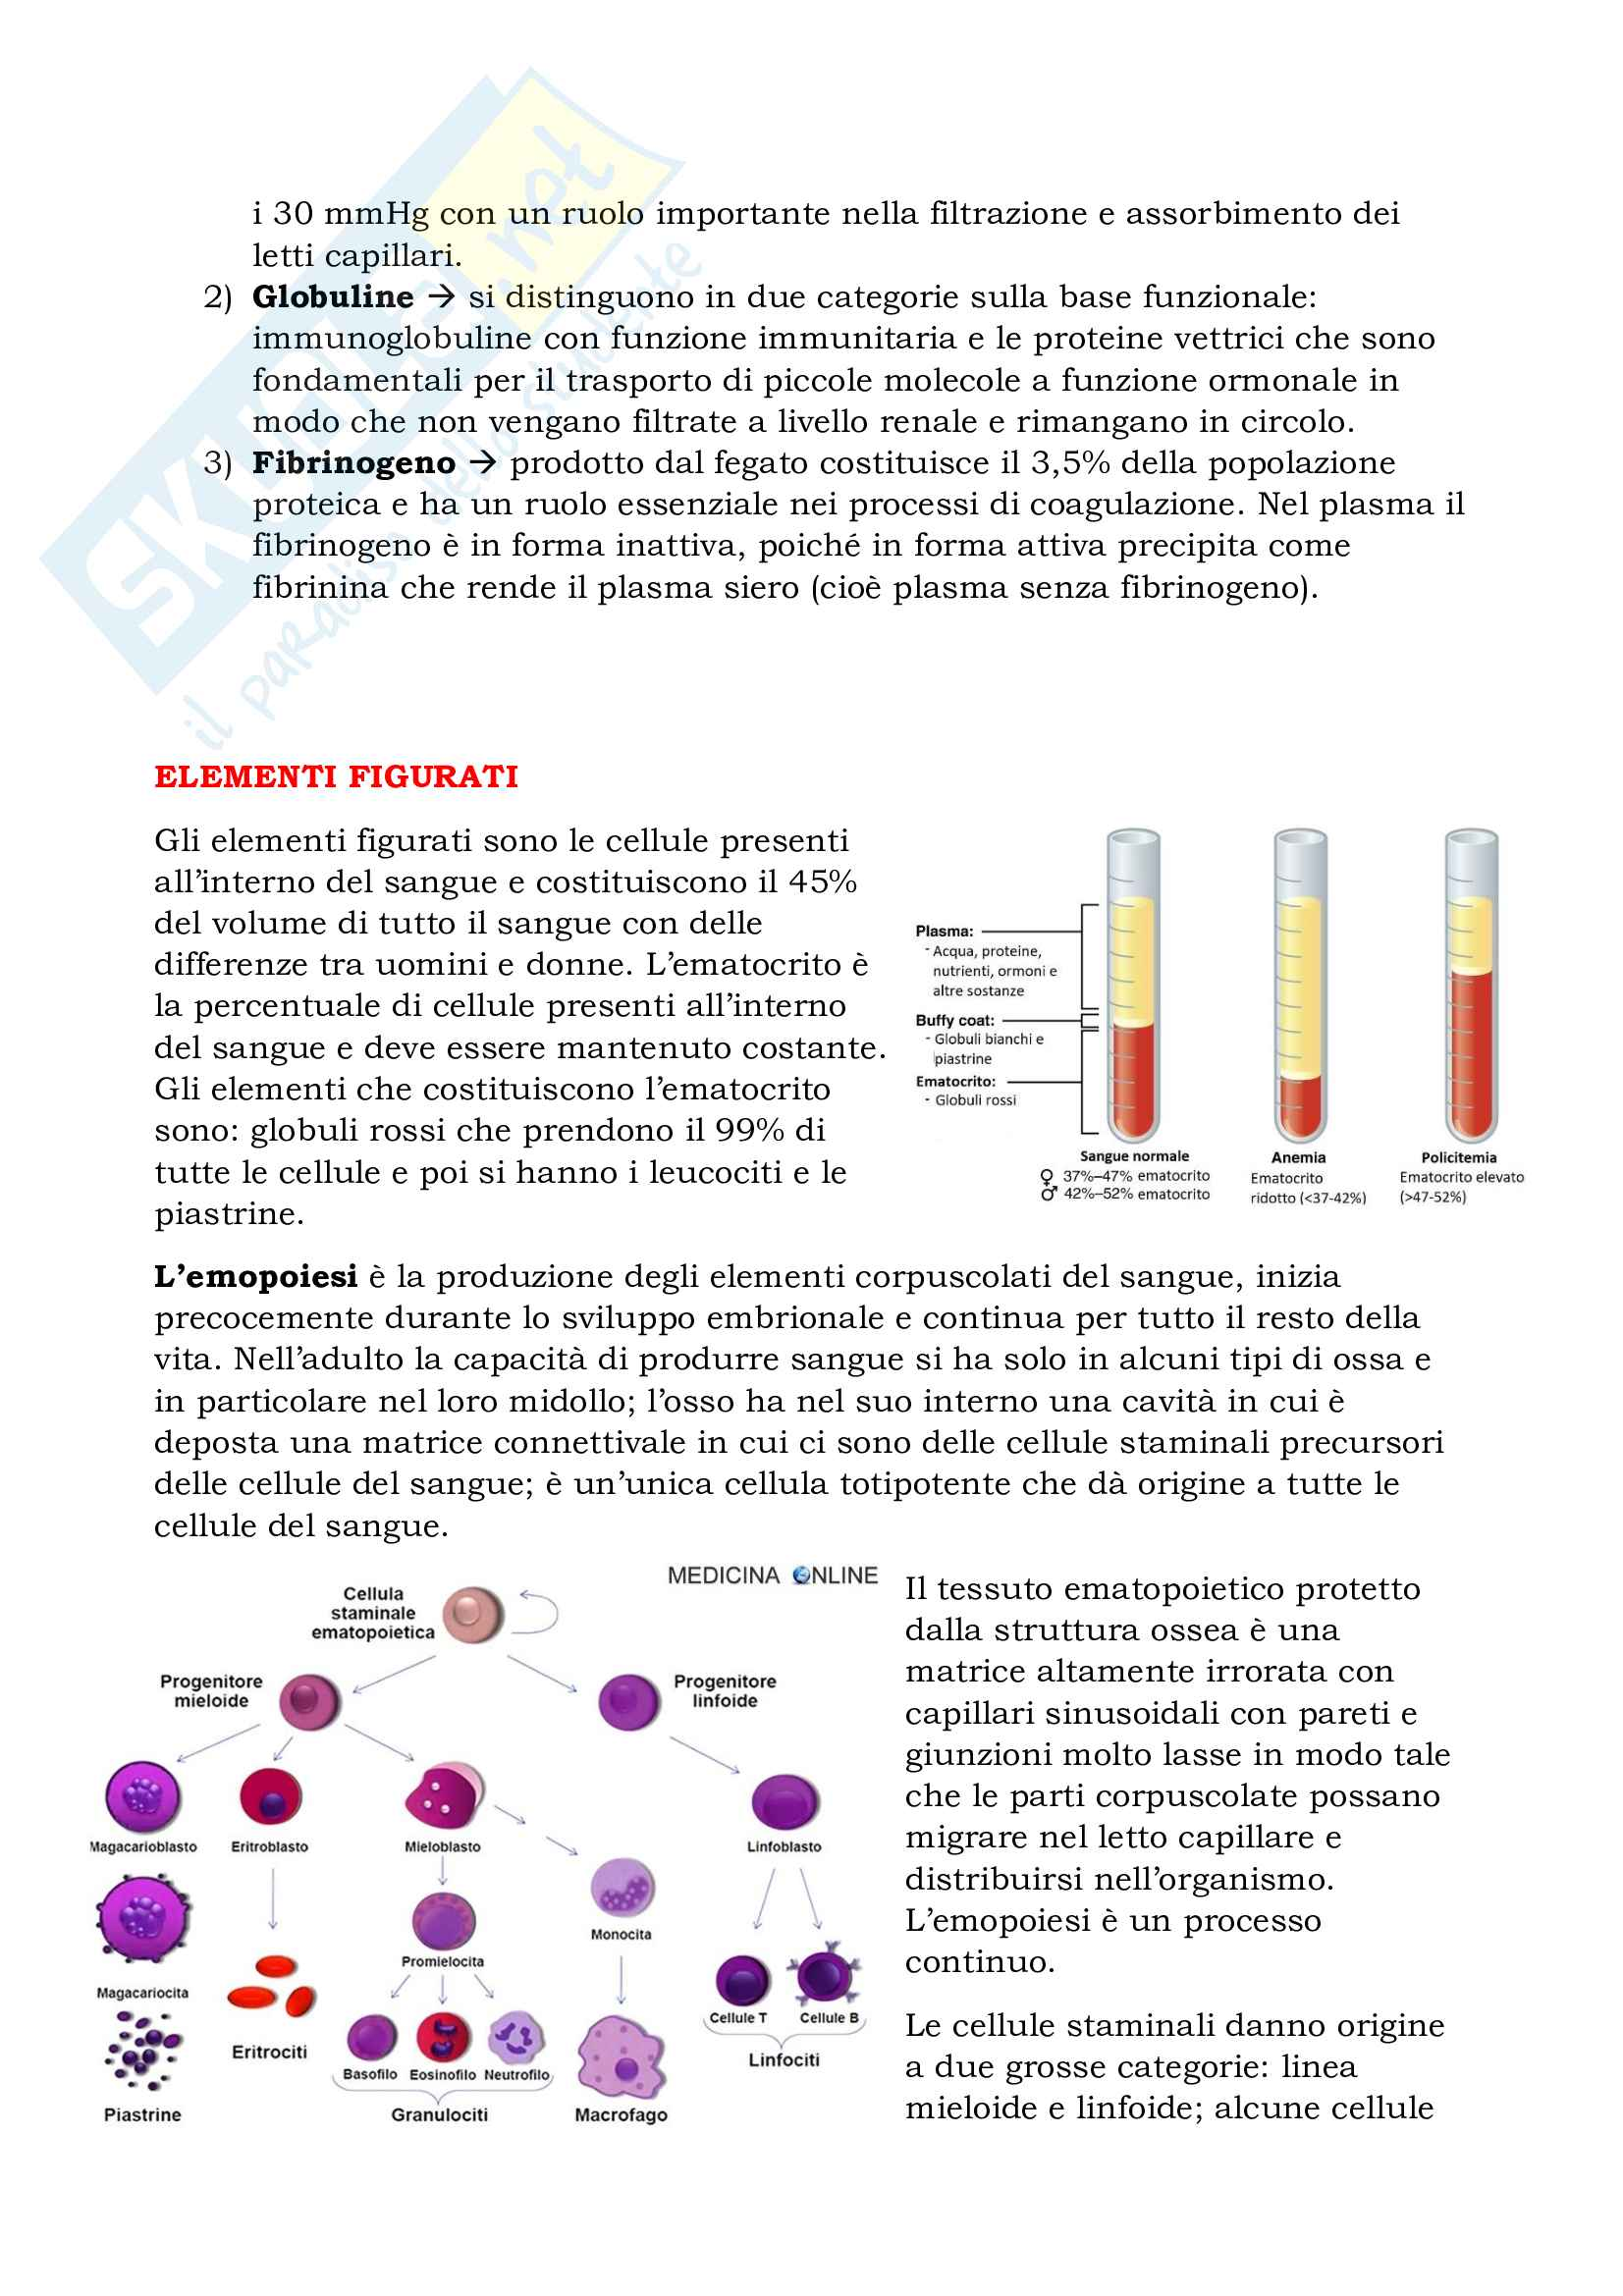 Appunti Fisiologia Cellulare 6, Prof. Perego Pag. 2